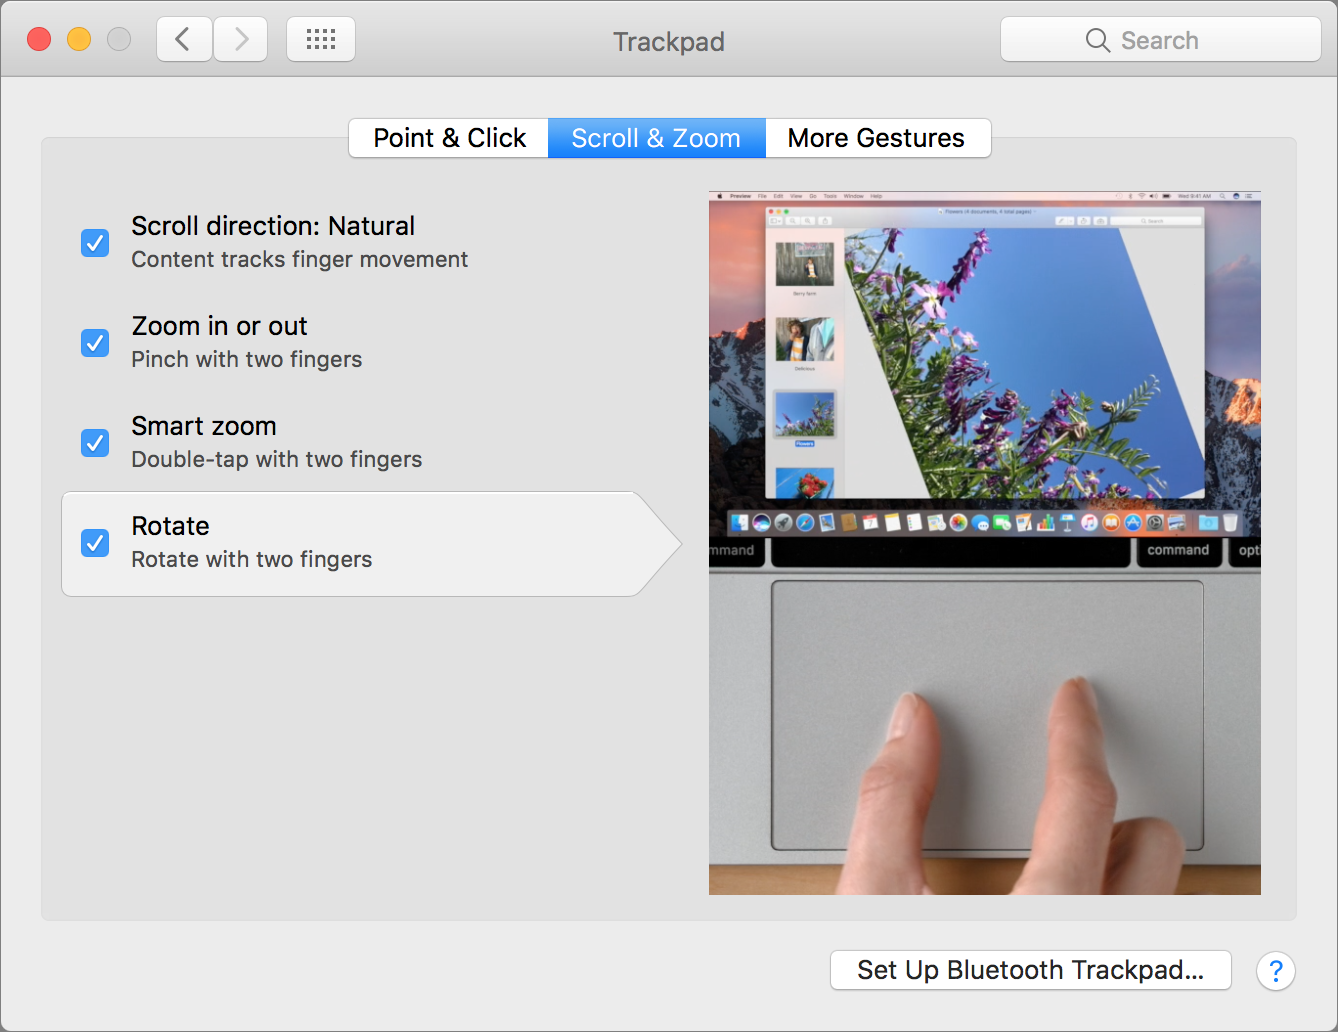 trackpad scroll & zoom setting